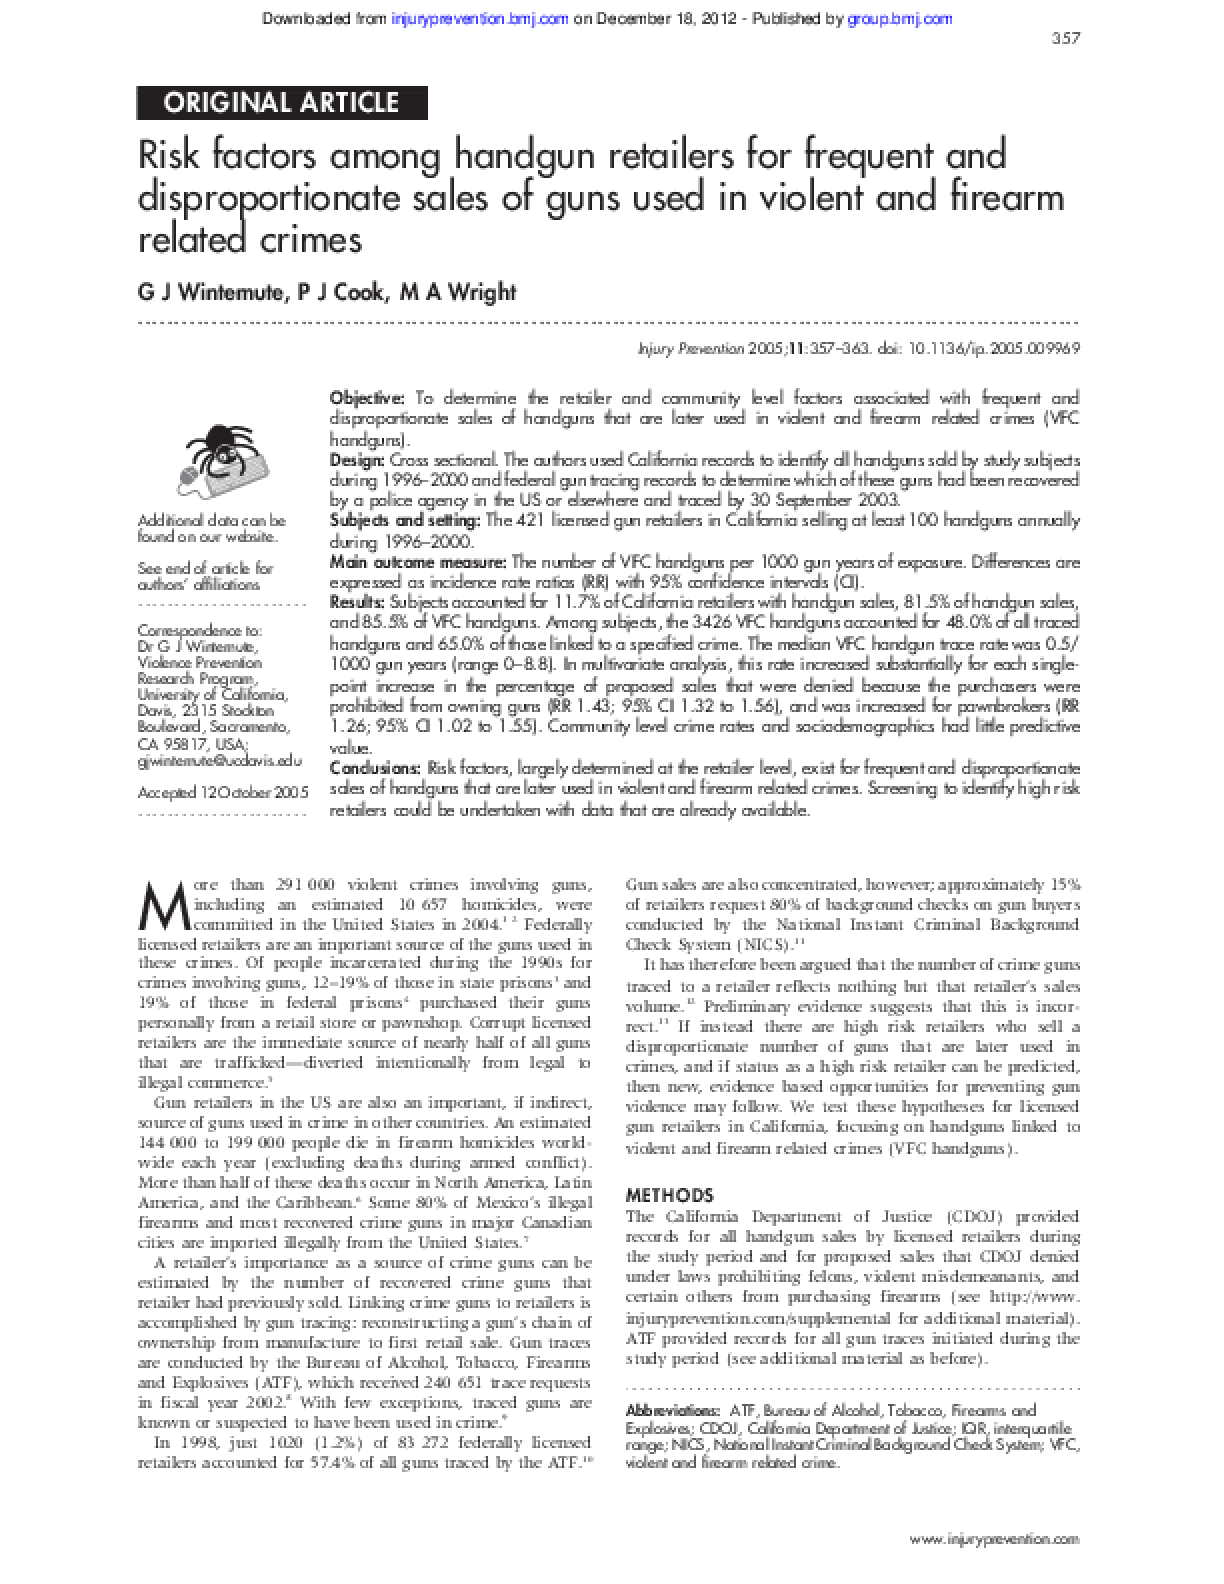 Risk Factors Among Handgun Retailers for Frequent and Disproportionate Sales of Guns Used in Violent and Firearm Related Crimes